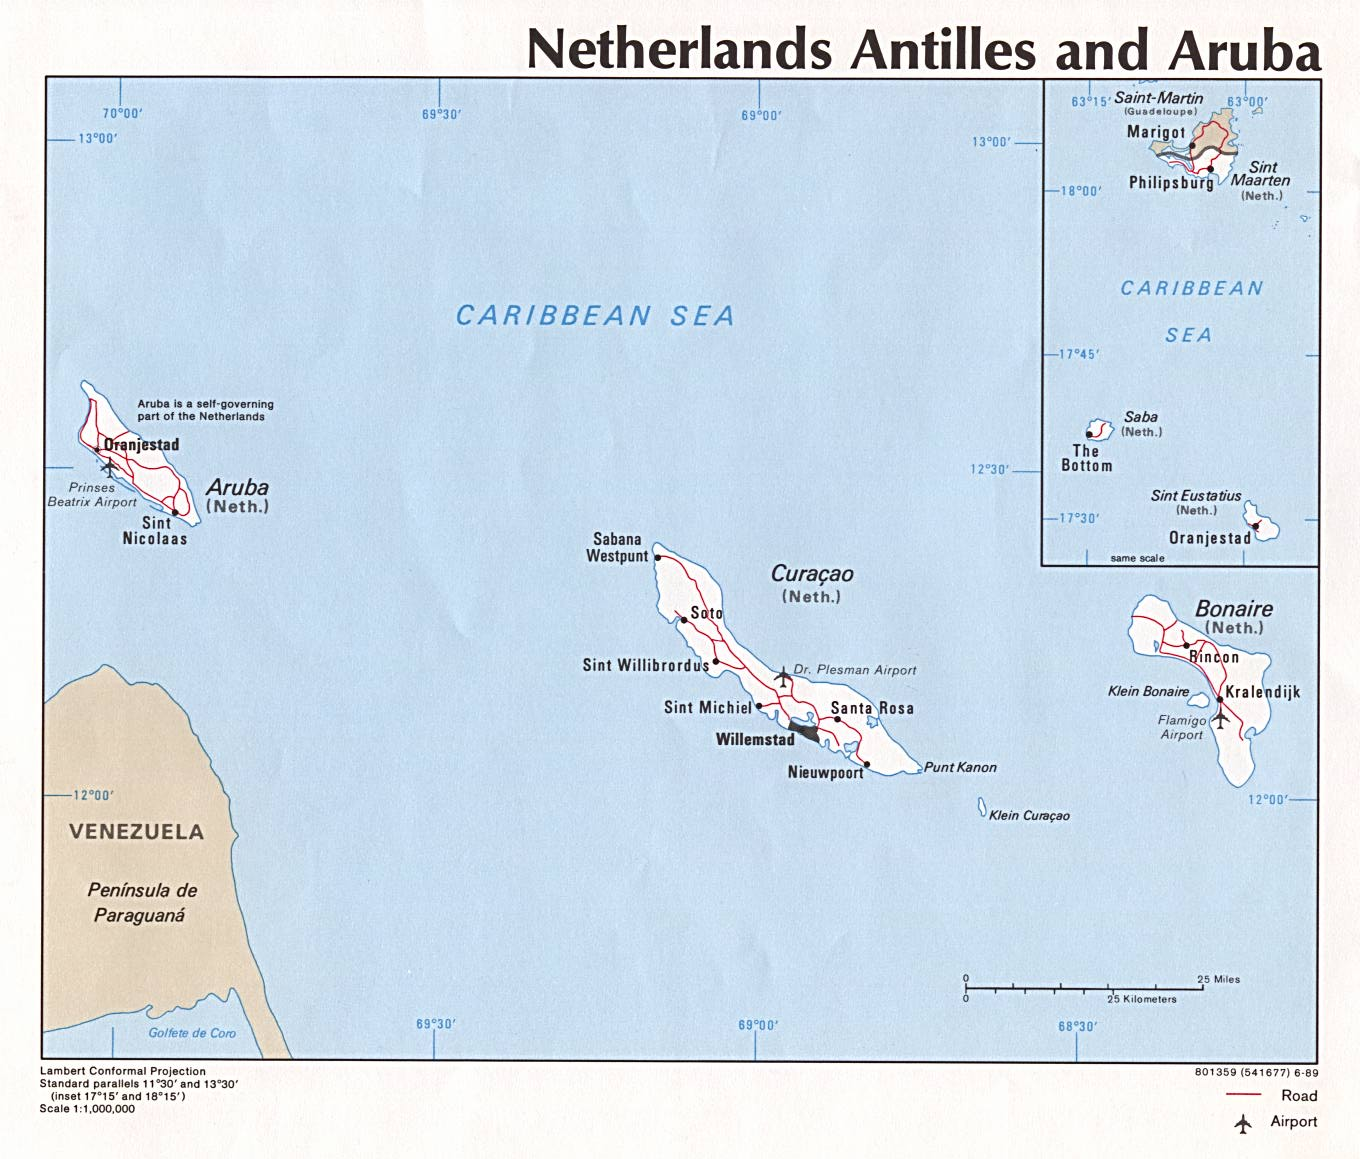 The Little-Noticed Dissolution of the Netherlands Antilles on